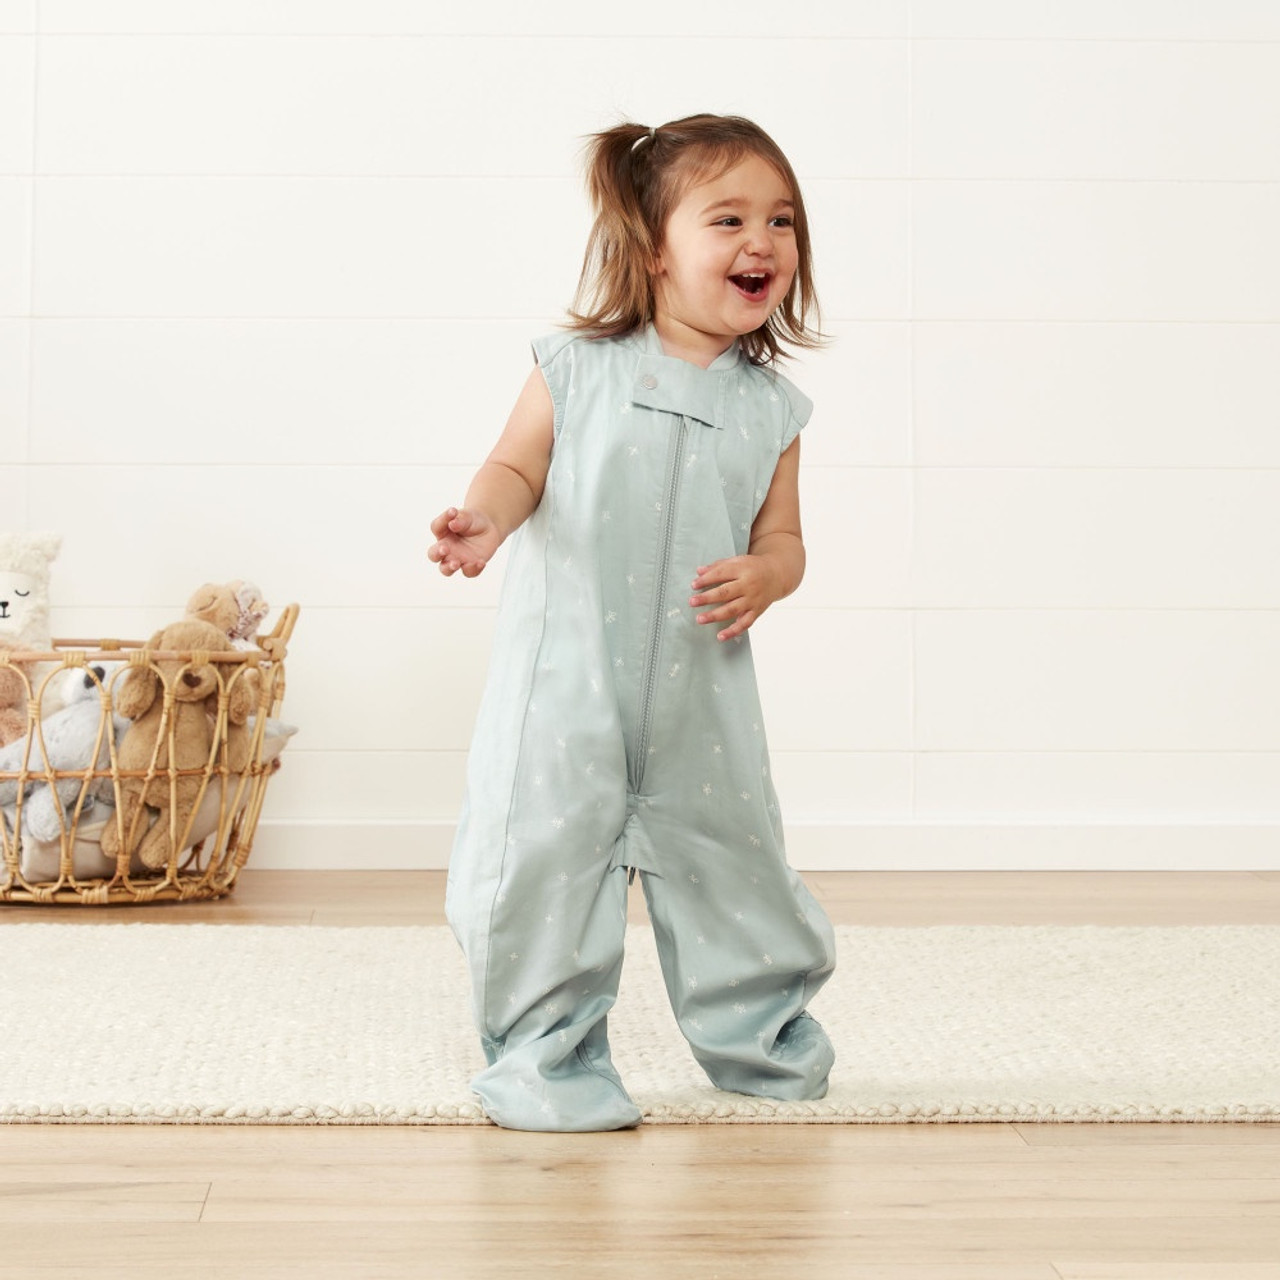 Ergopouch Sleep Suit Bag 0.3 Tog 3-12 Months at Baby Barn Discounts